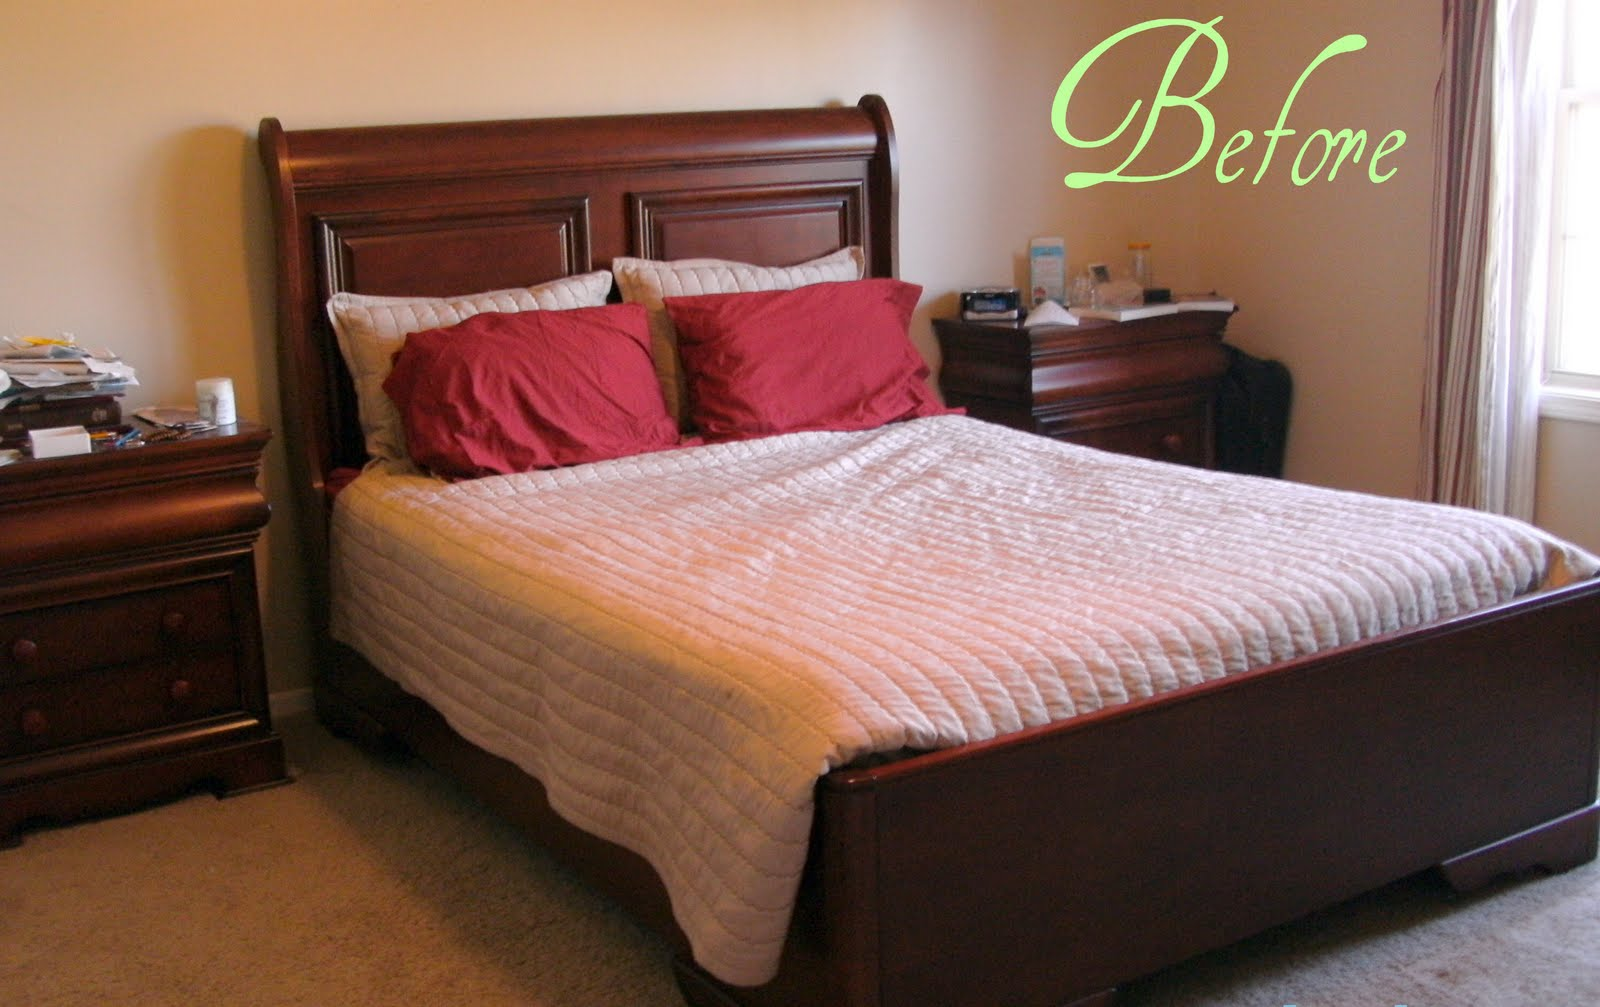 Details on the goodwill makeover for Bedroom makeover